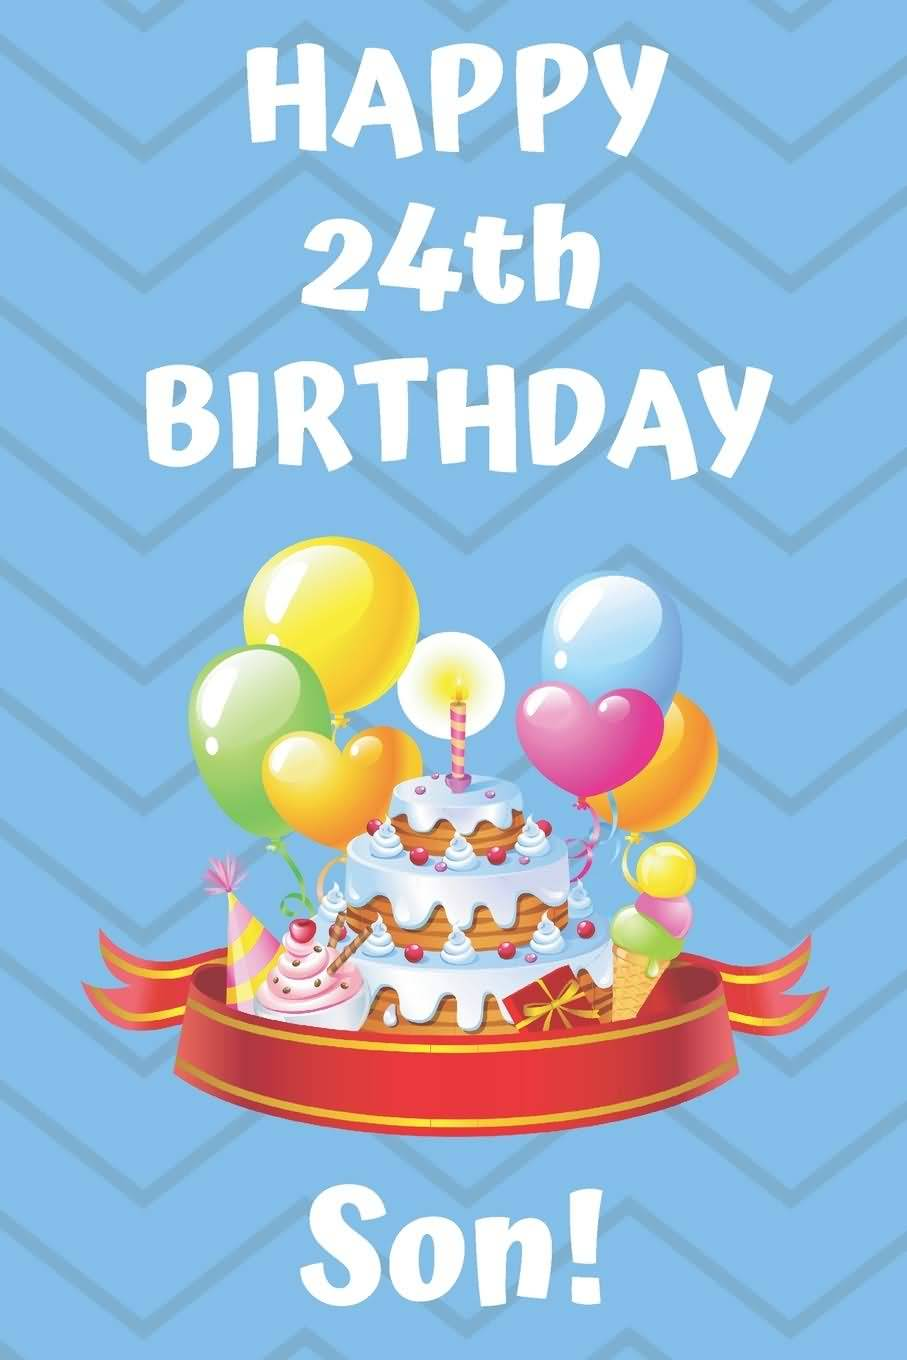 Wonderful Happy 24th Birthday Image For Facebook